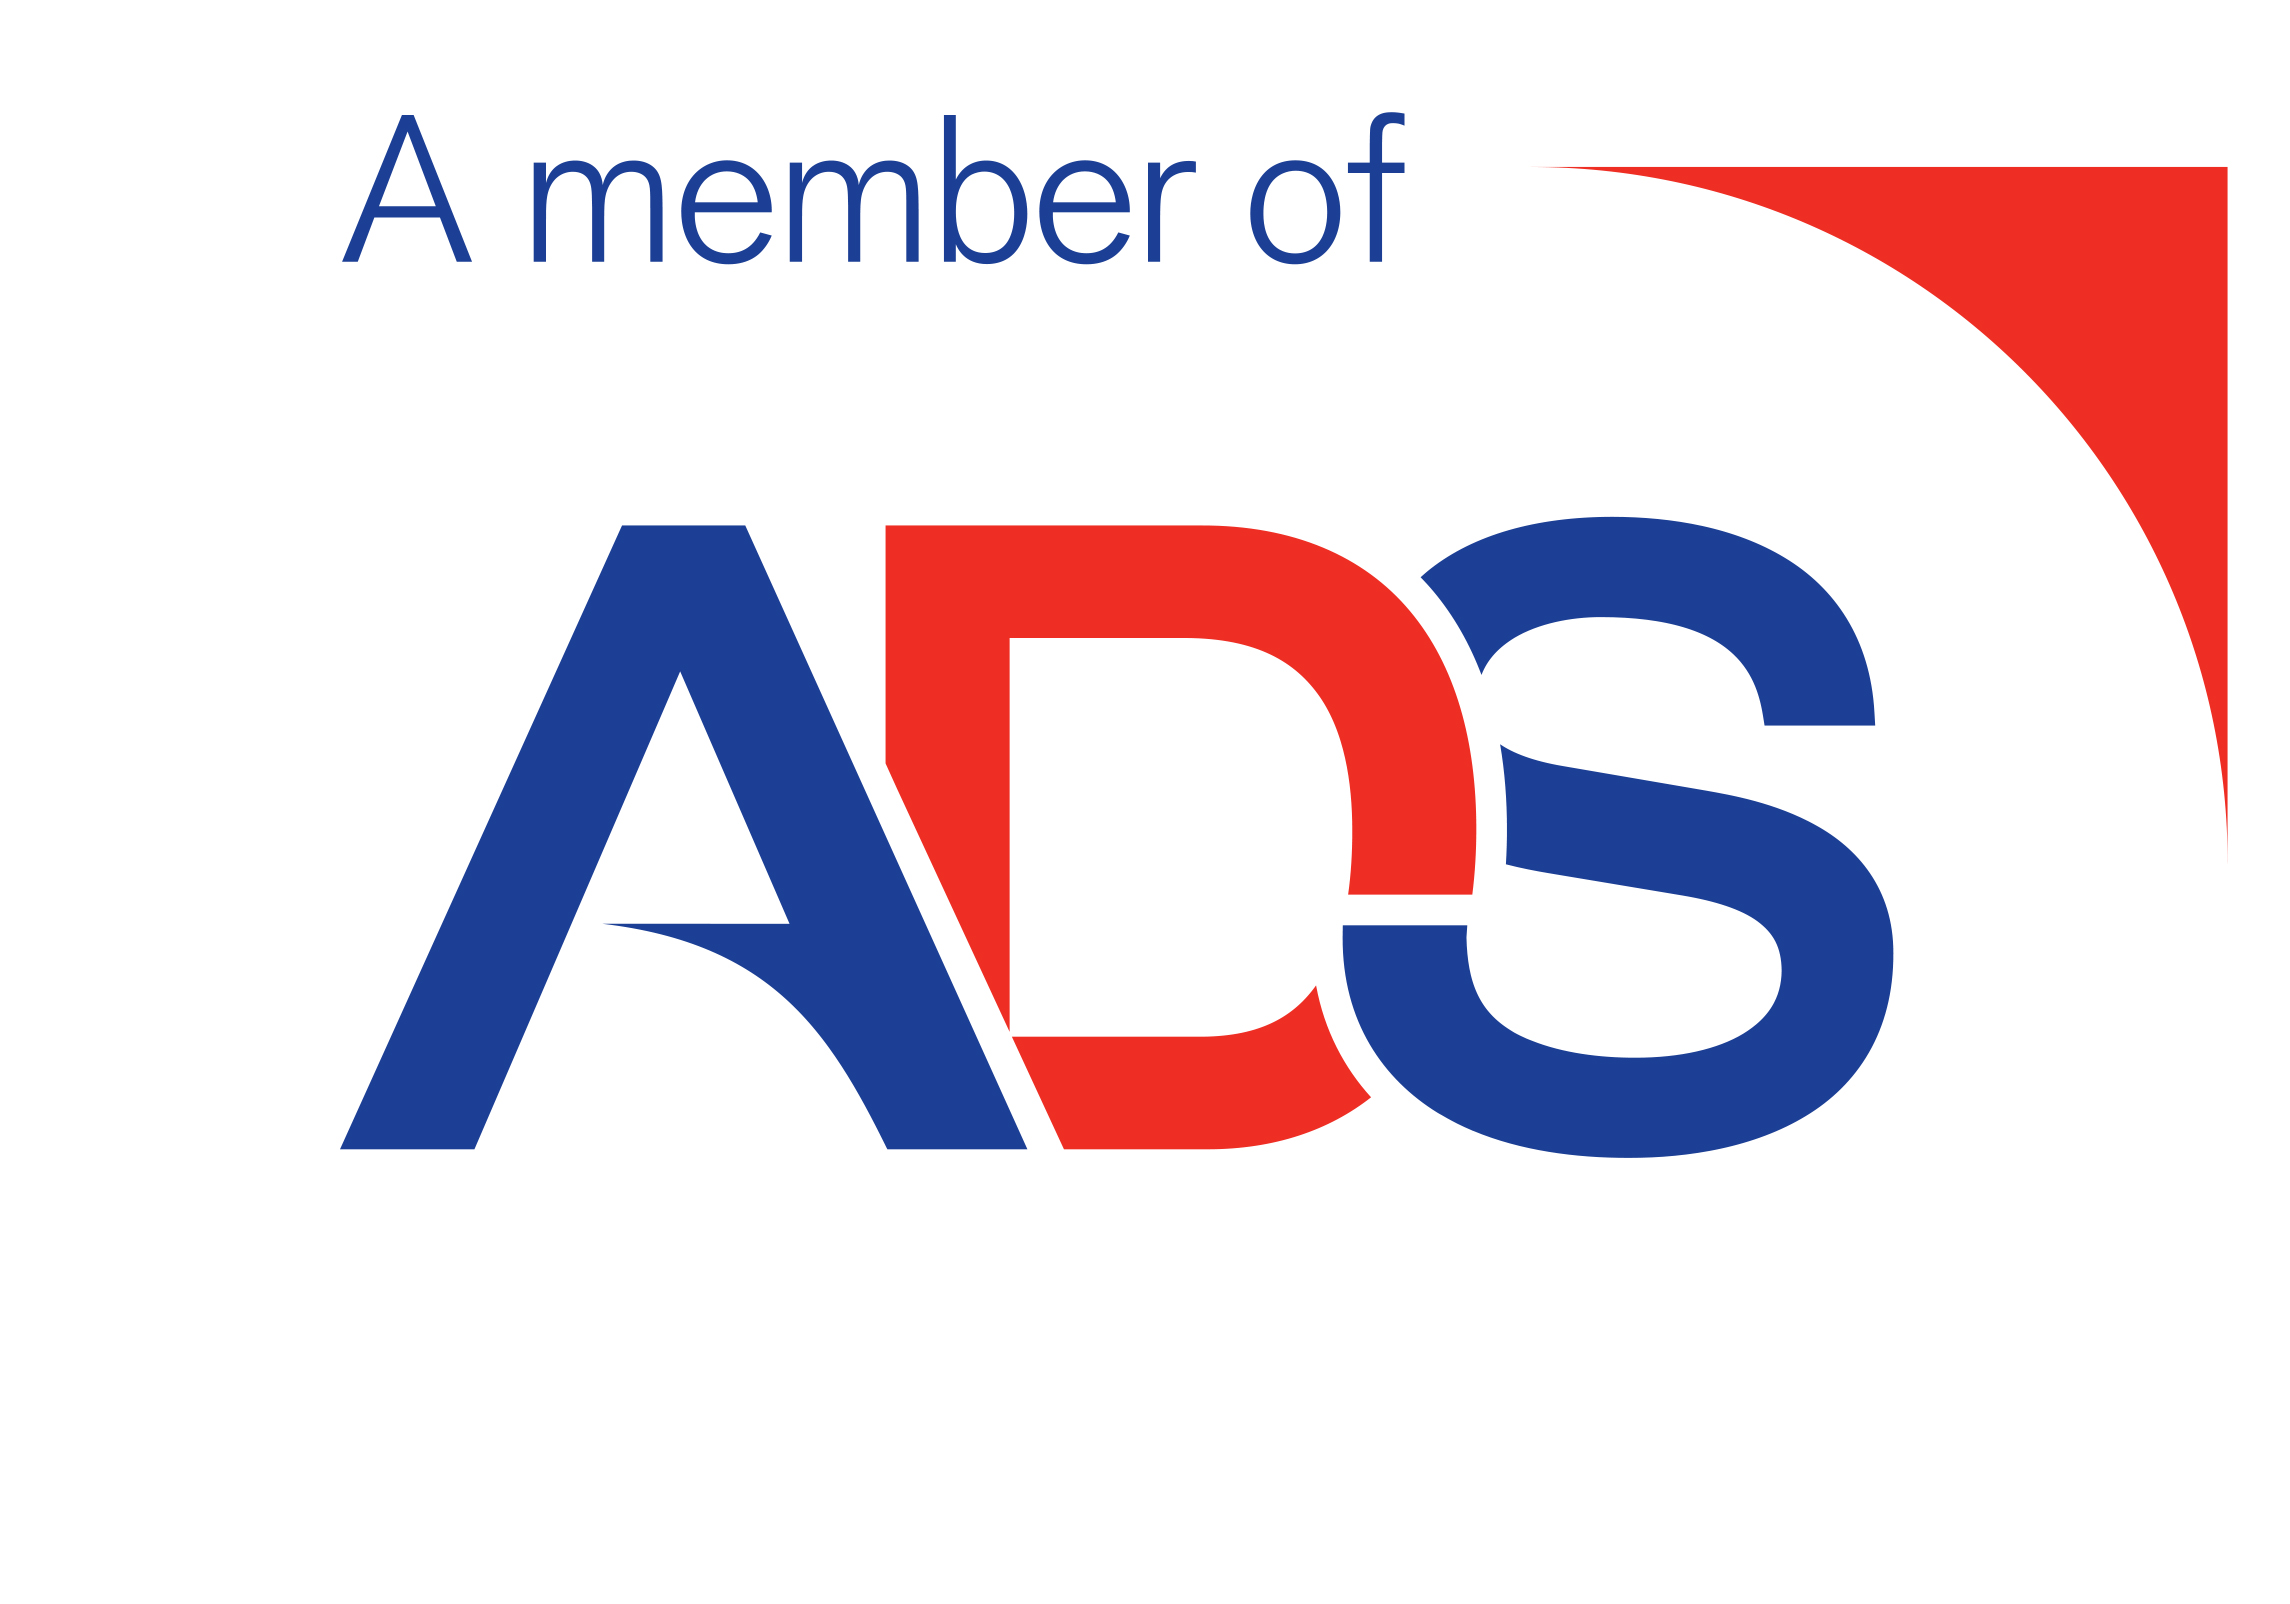 A member of ADS